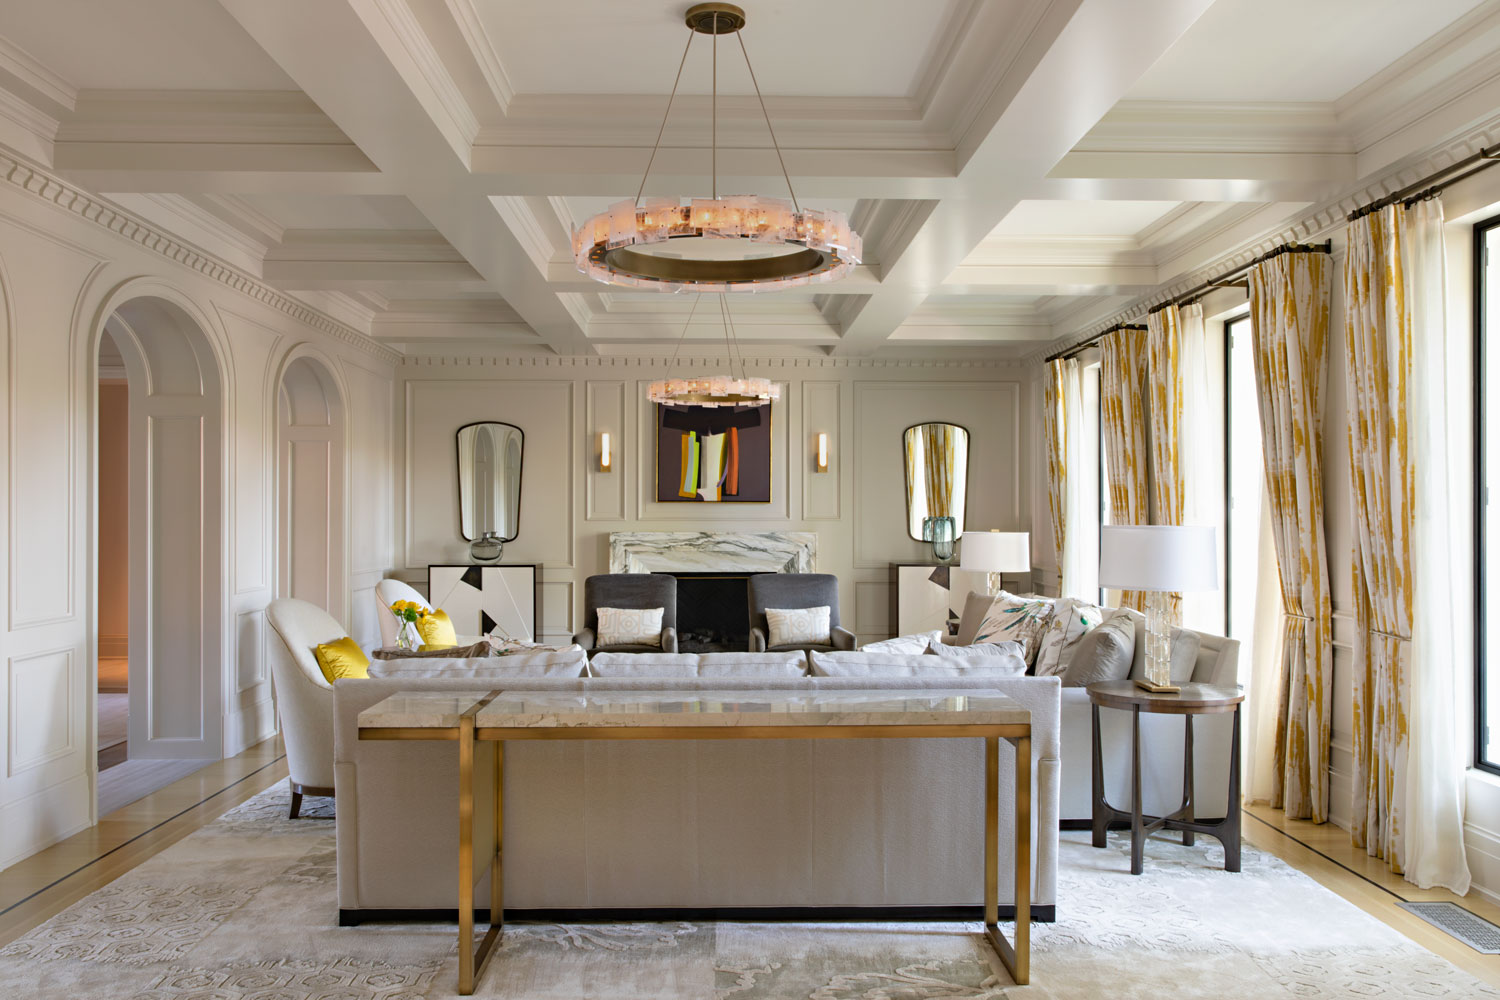 05-coffered-ceiling-paneled-walls-marble-surround-fireplace-gary-drake-general-contractor.jpg